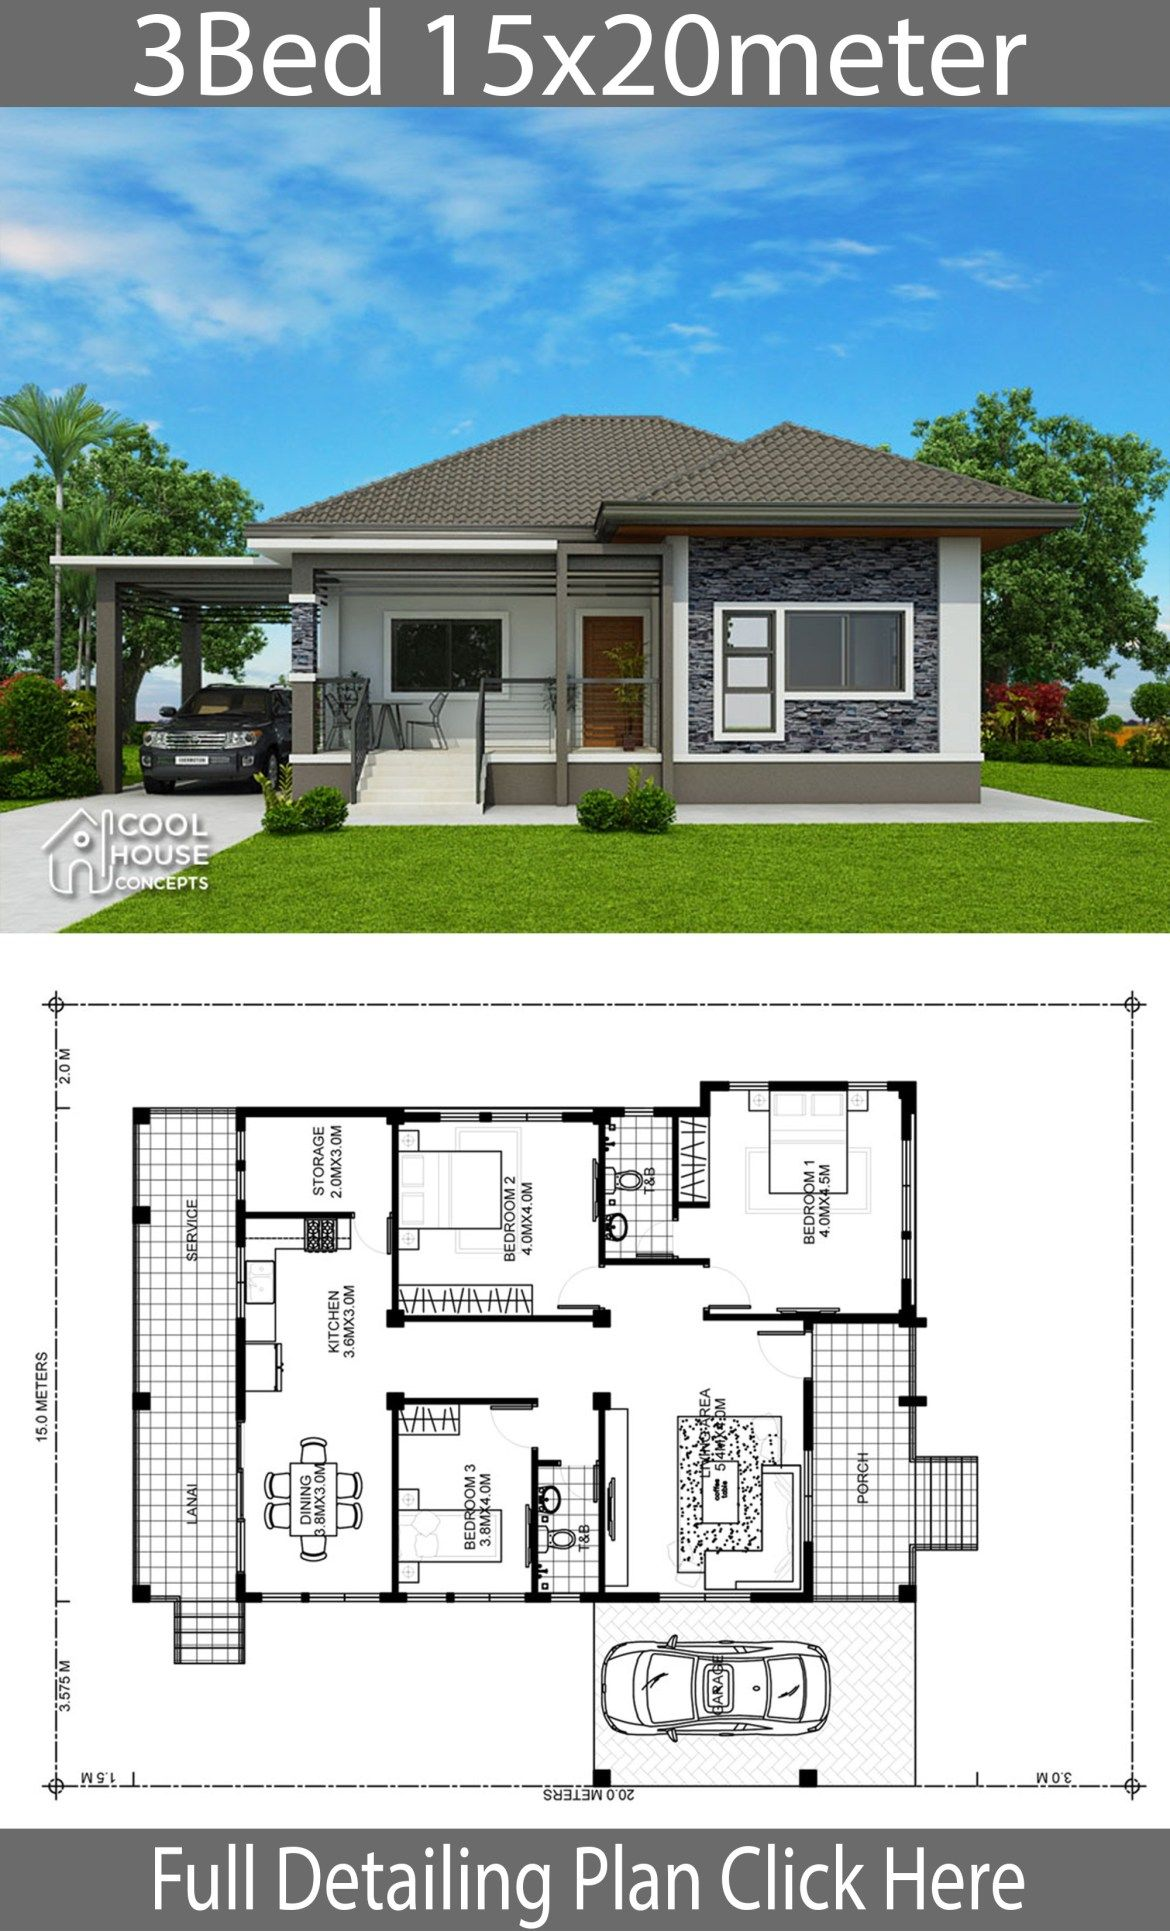 Home Design Plan 15x20m With 3 Bedrooms Home Planssearch Philippines House Design Beautiful House Plans Modern Bungalow House